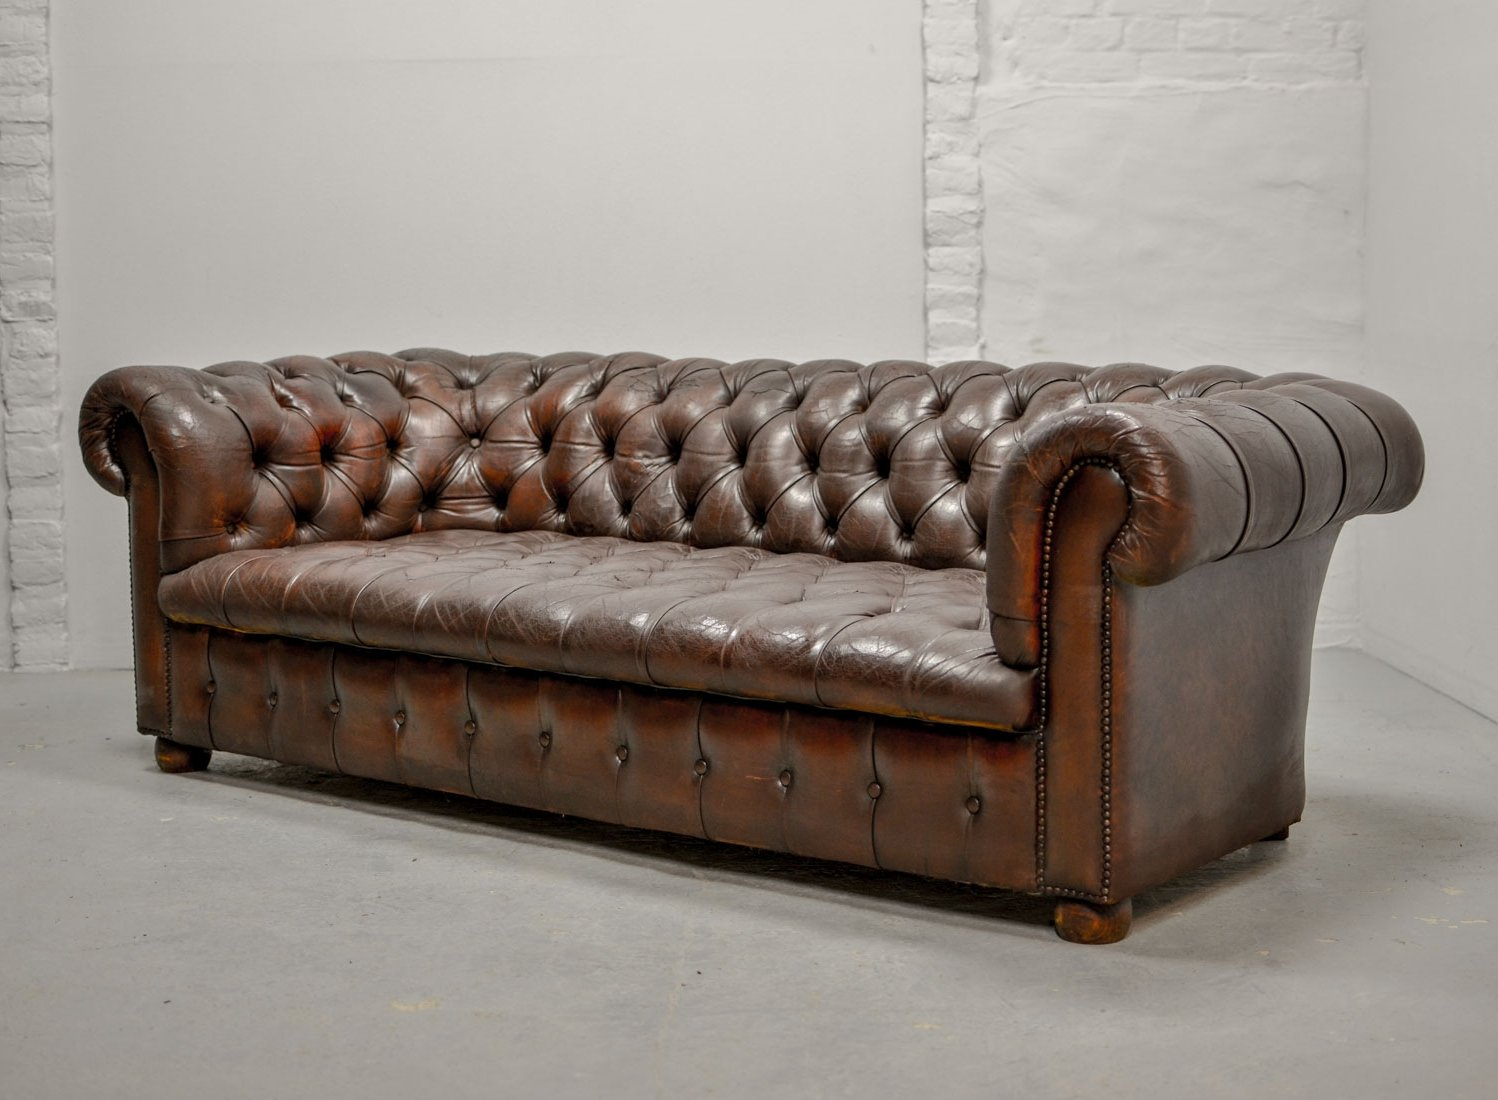 Tufted Chestnut Deep Brown Leather Three Seat Chesterfield Sofa